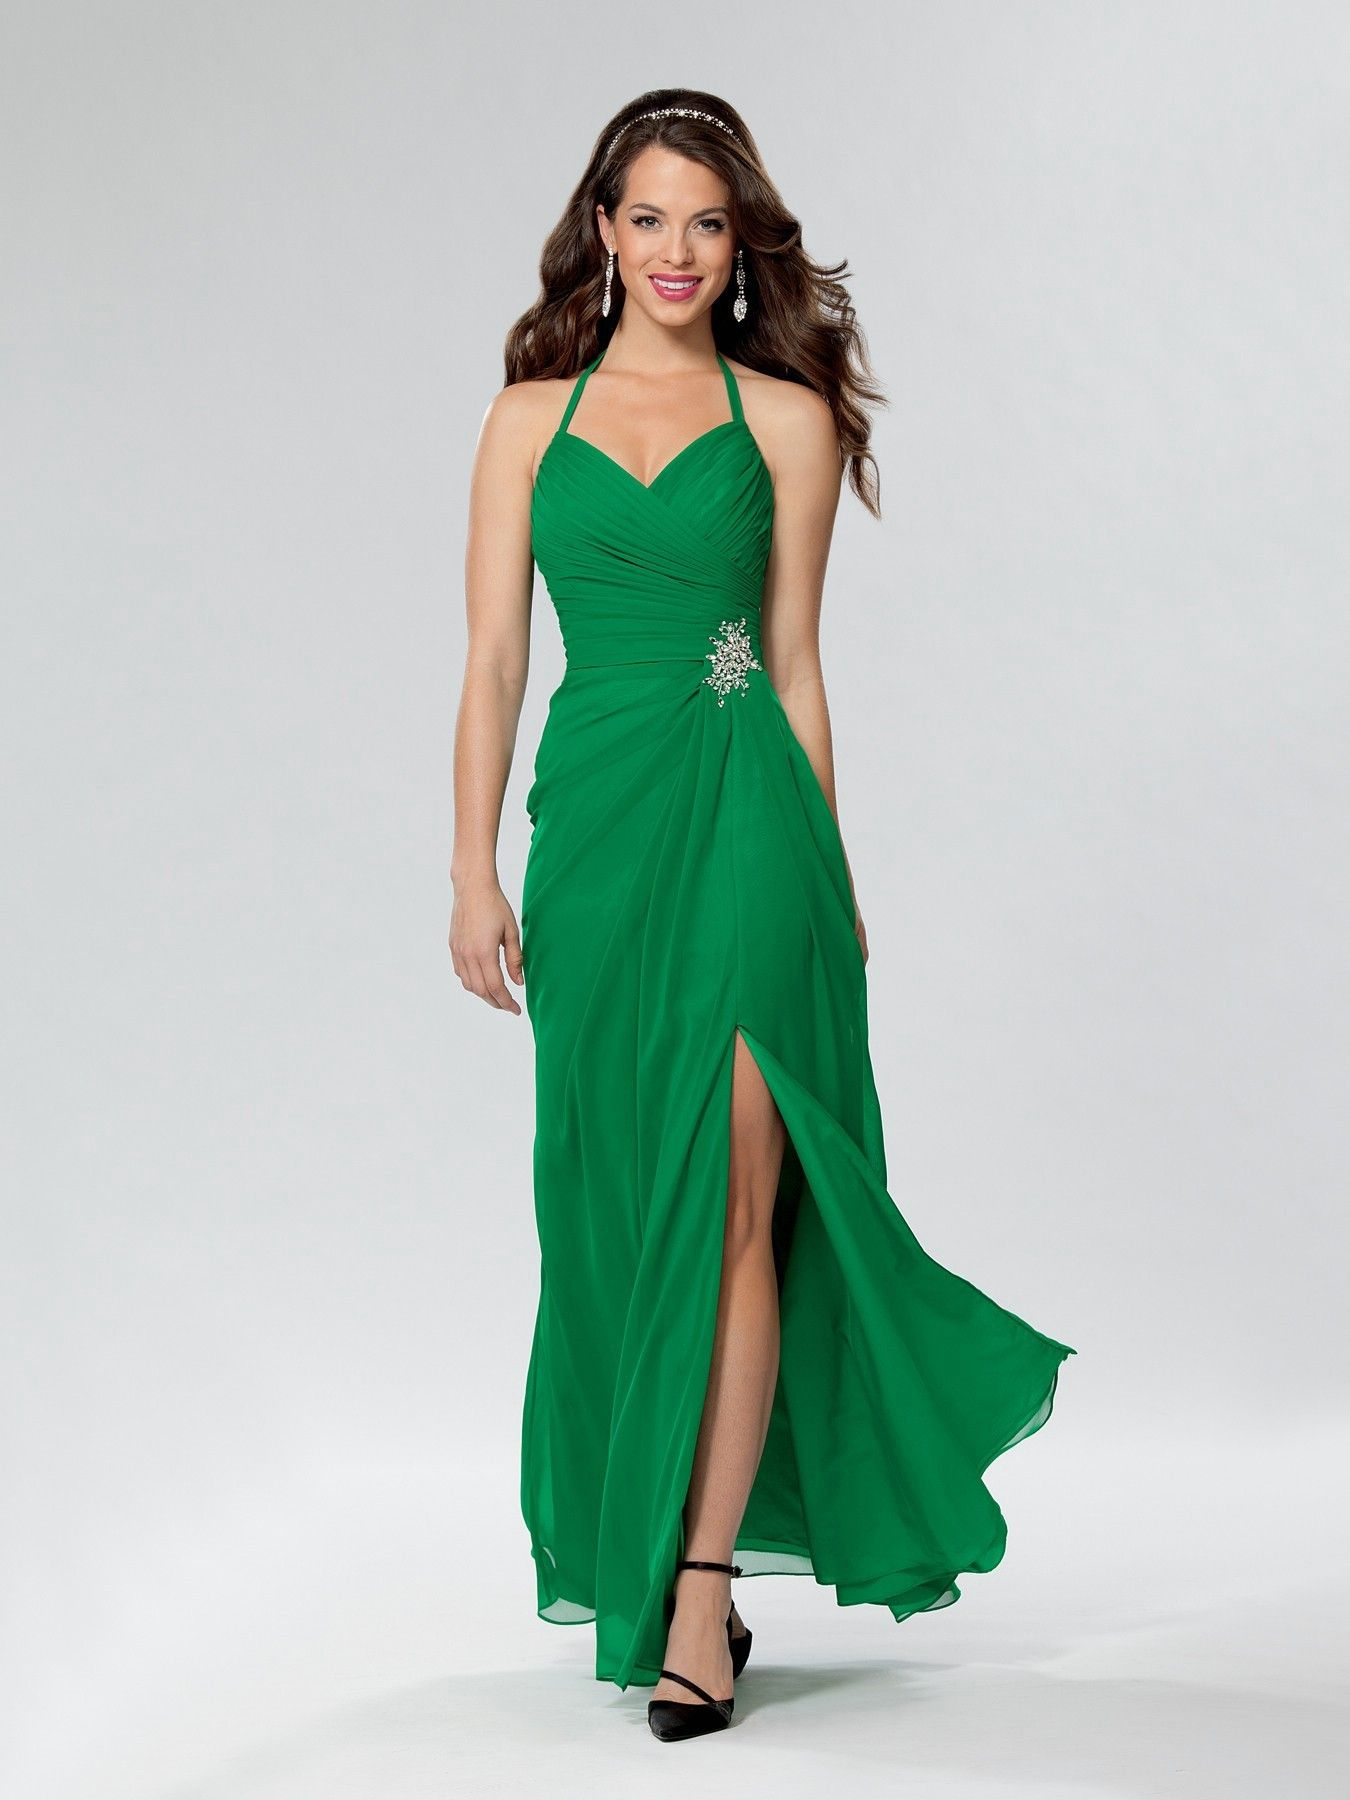 Jordan bridesmaid dresses style 641 emerald bridesmaid dresses jordan bridesmaid dresses style 641 emerald bridesmaid dresses ombrellifo Image collections